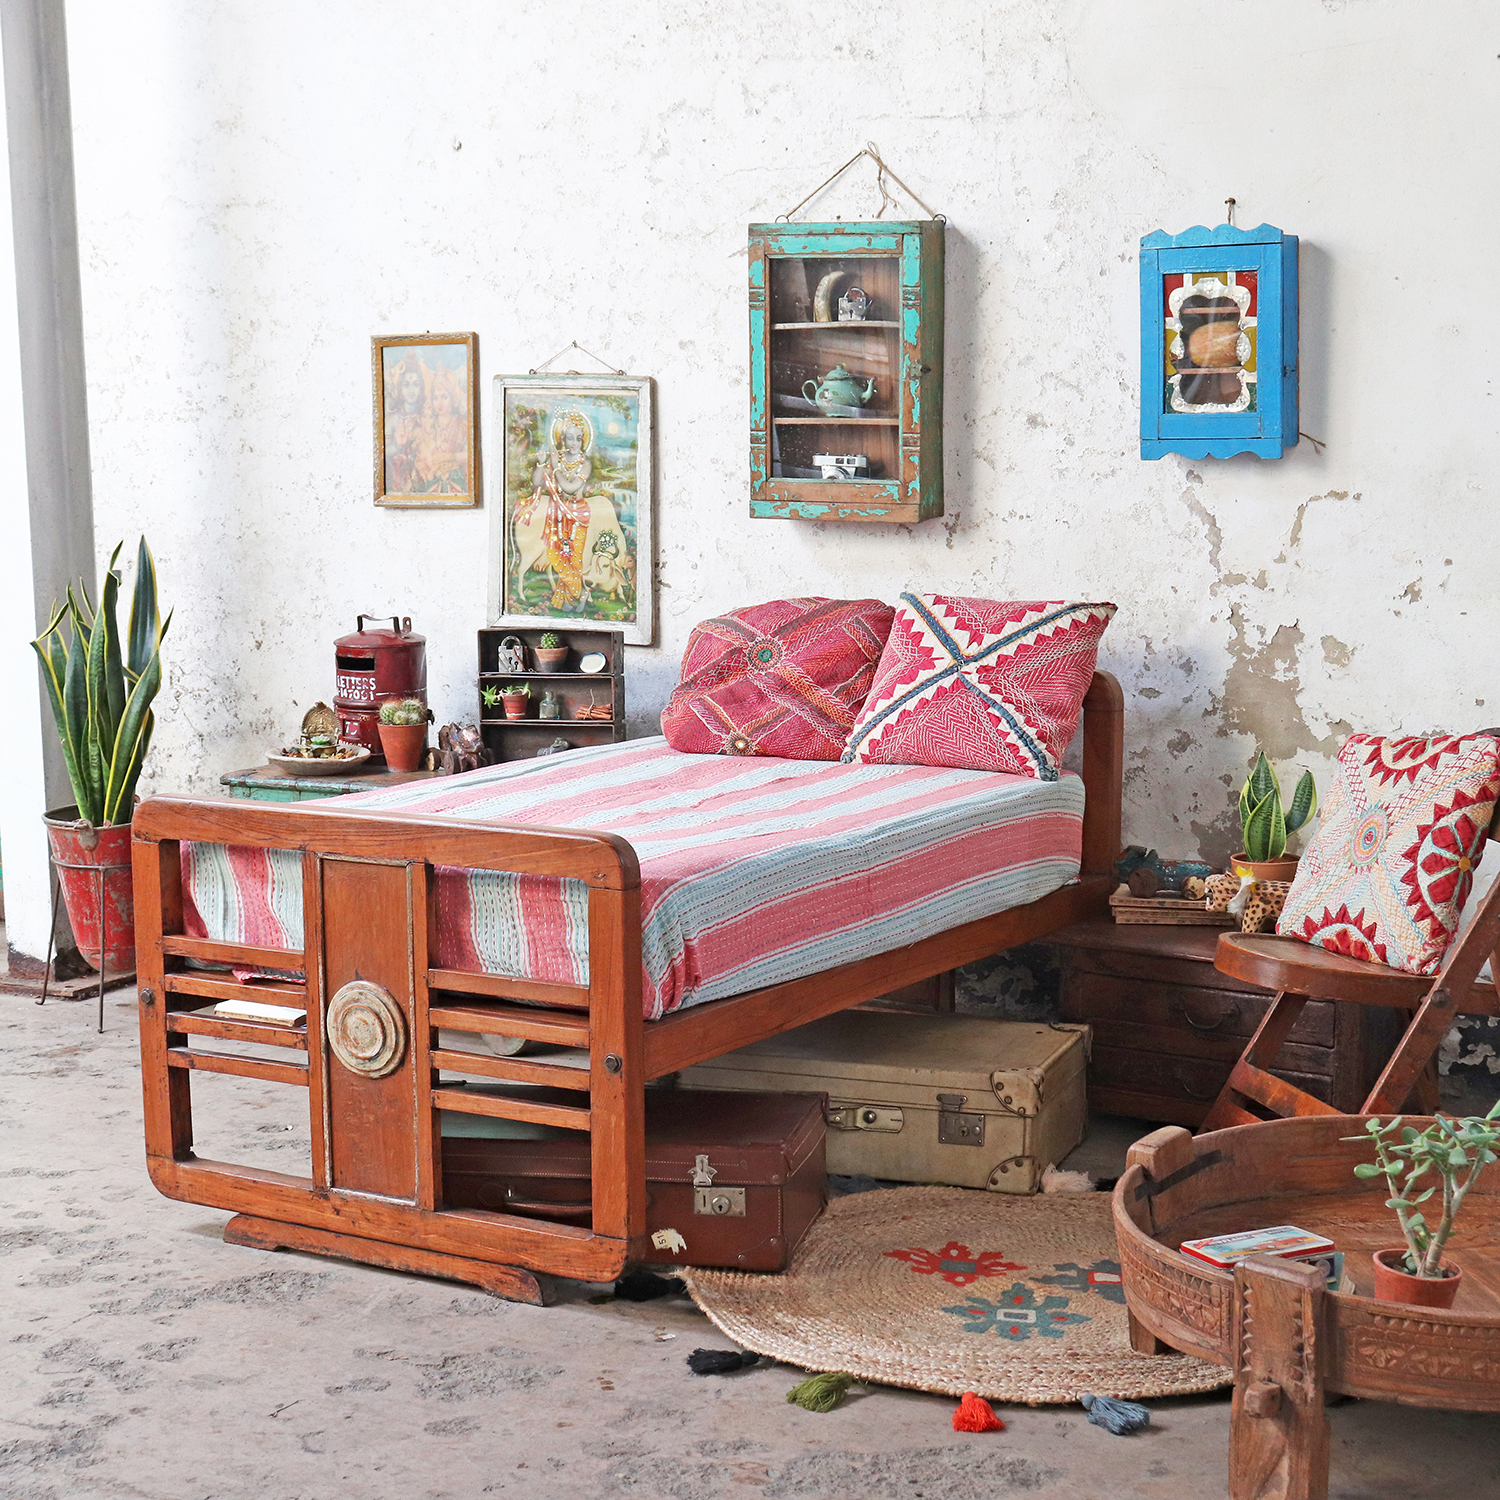 Our first interior style of 2021, Rustic Vogue